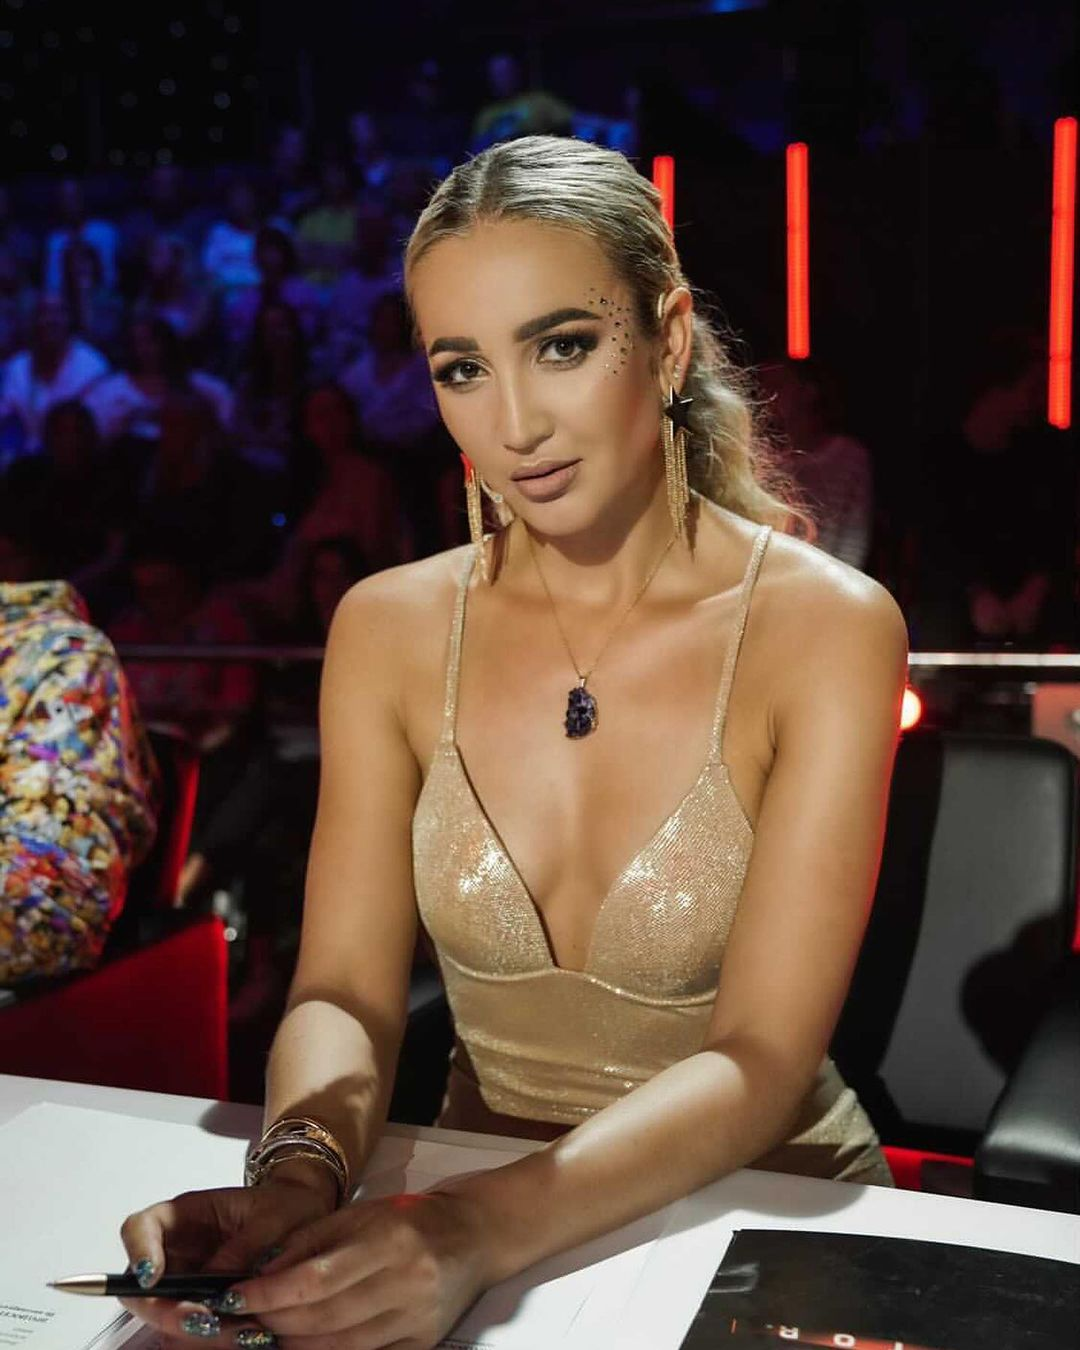 Olga Buzova calculated how much she earns and called herself an enviable bride